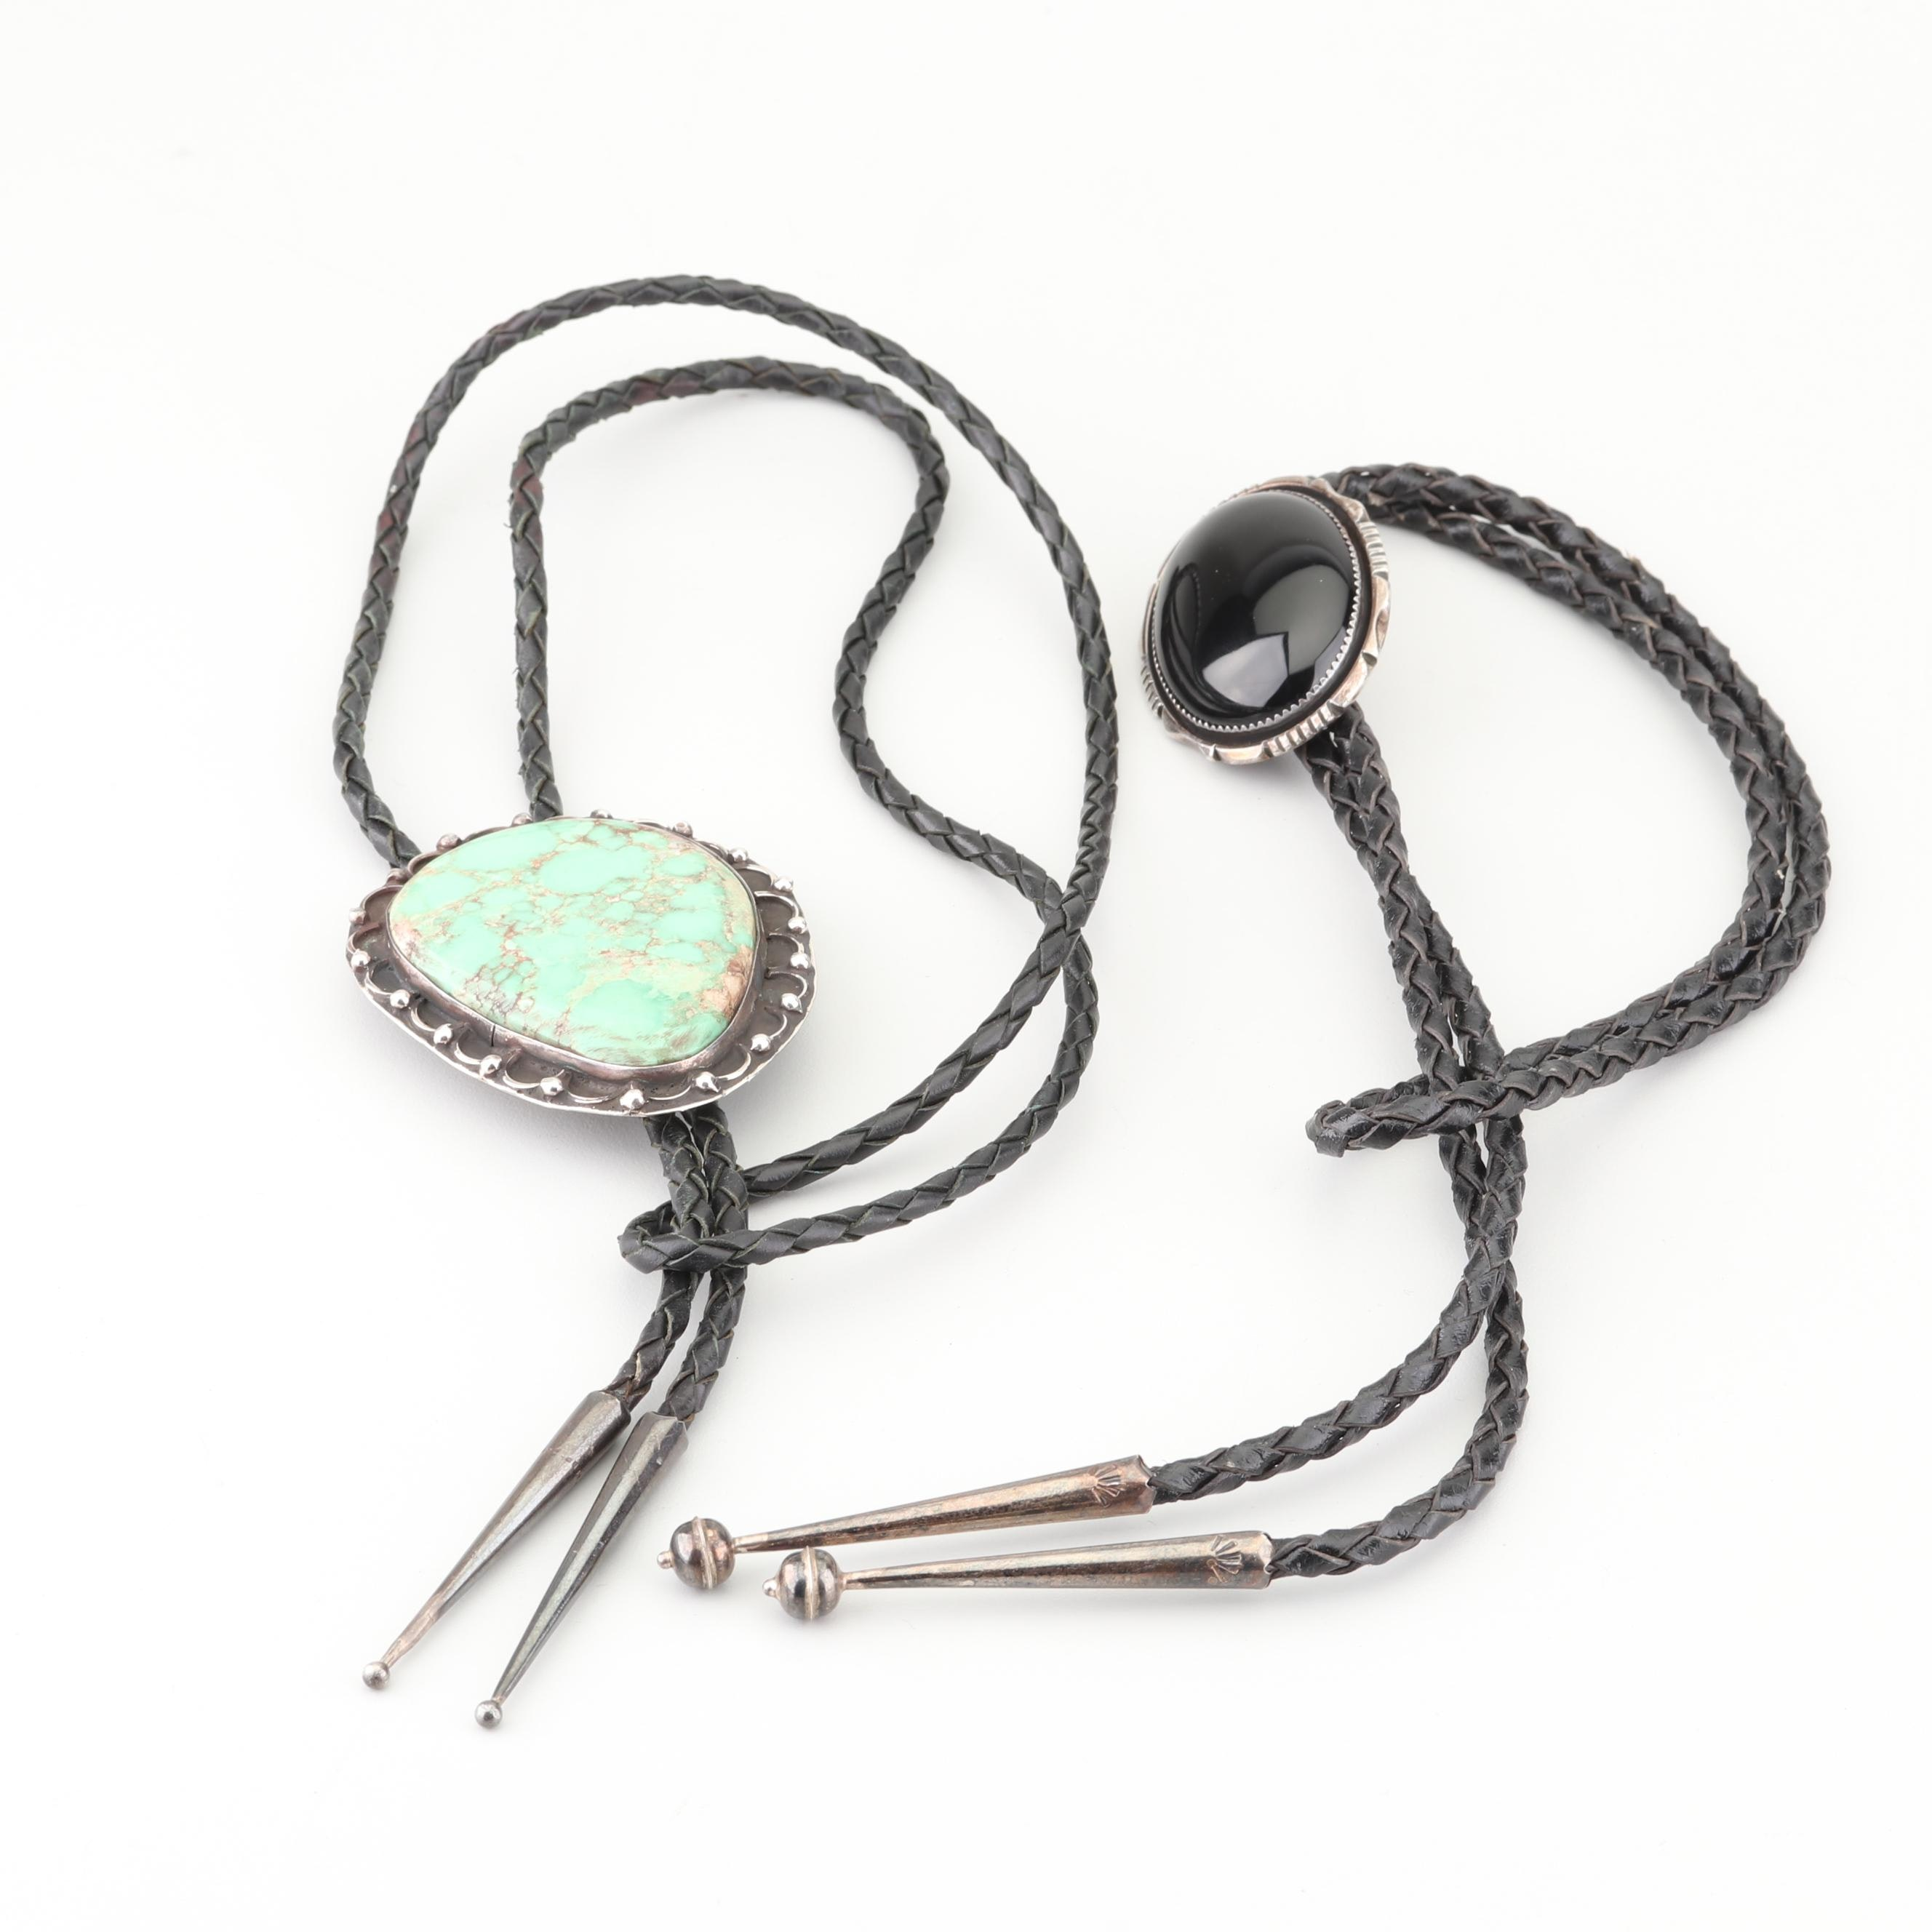 900 Silver Turquoise and Black Onyx Leather Bolo Ties